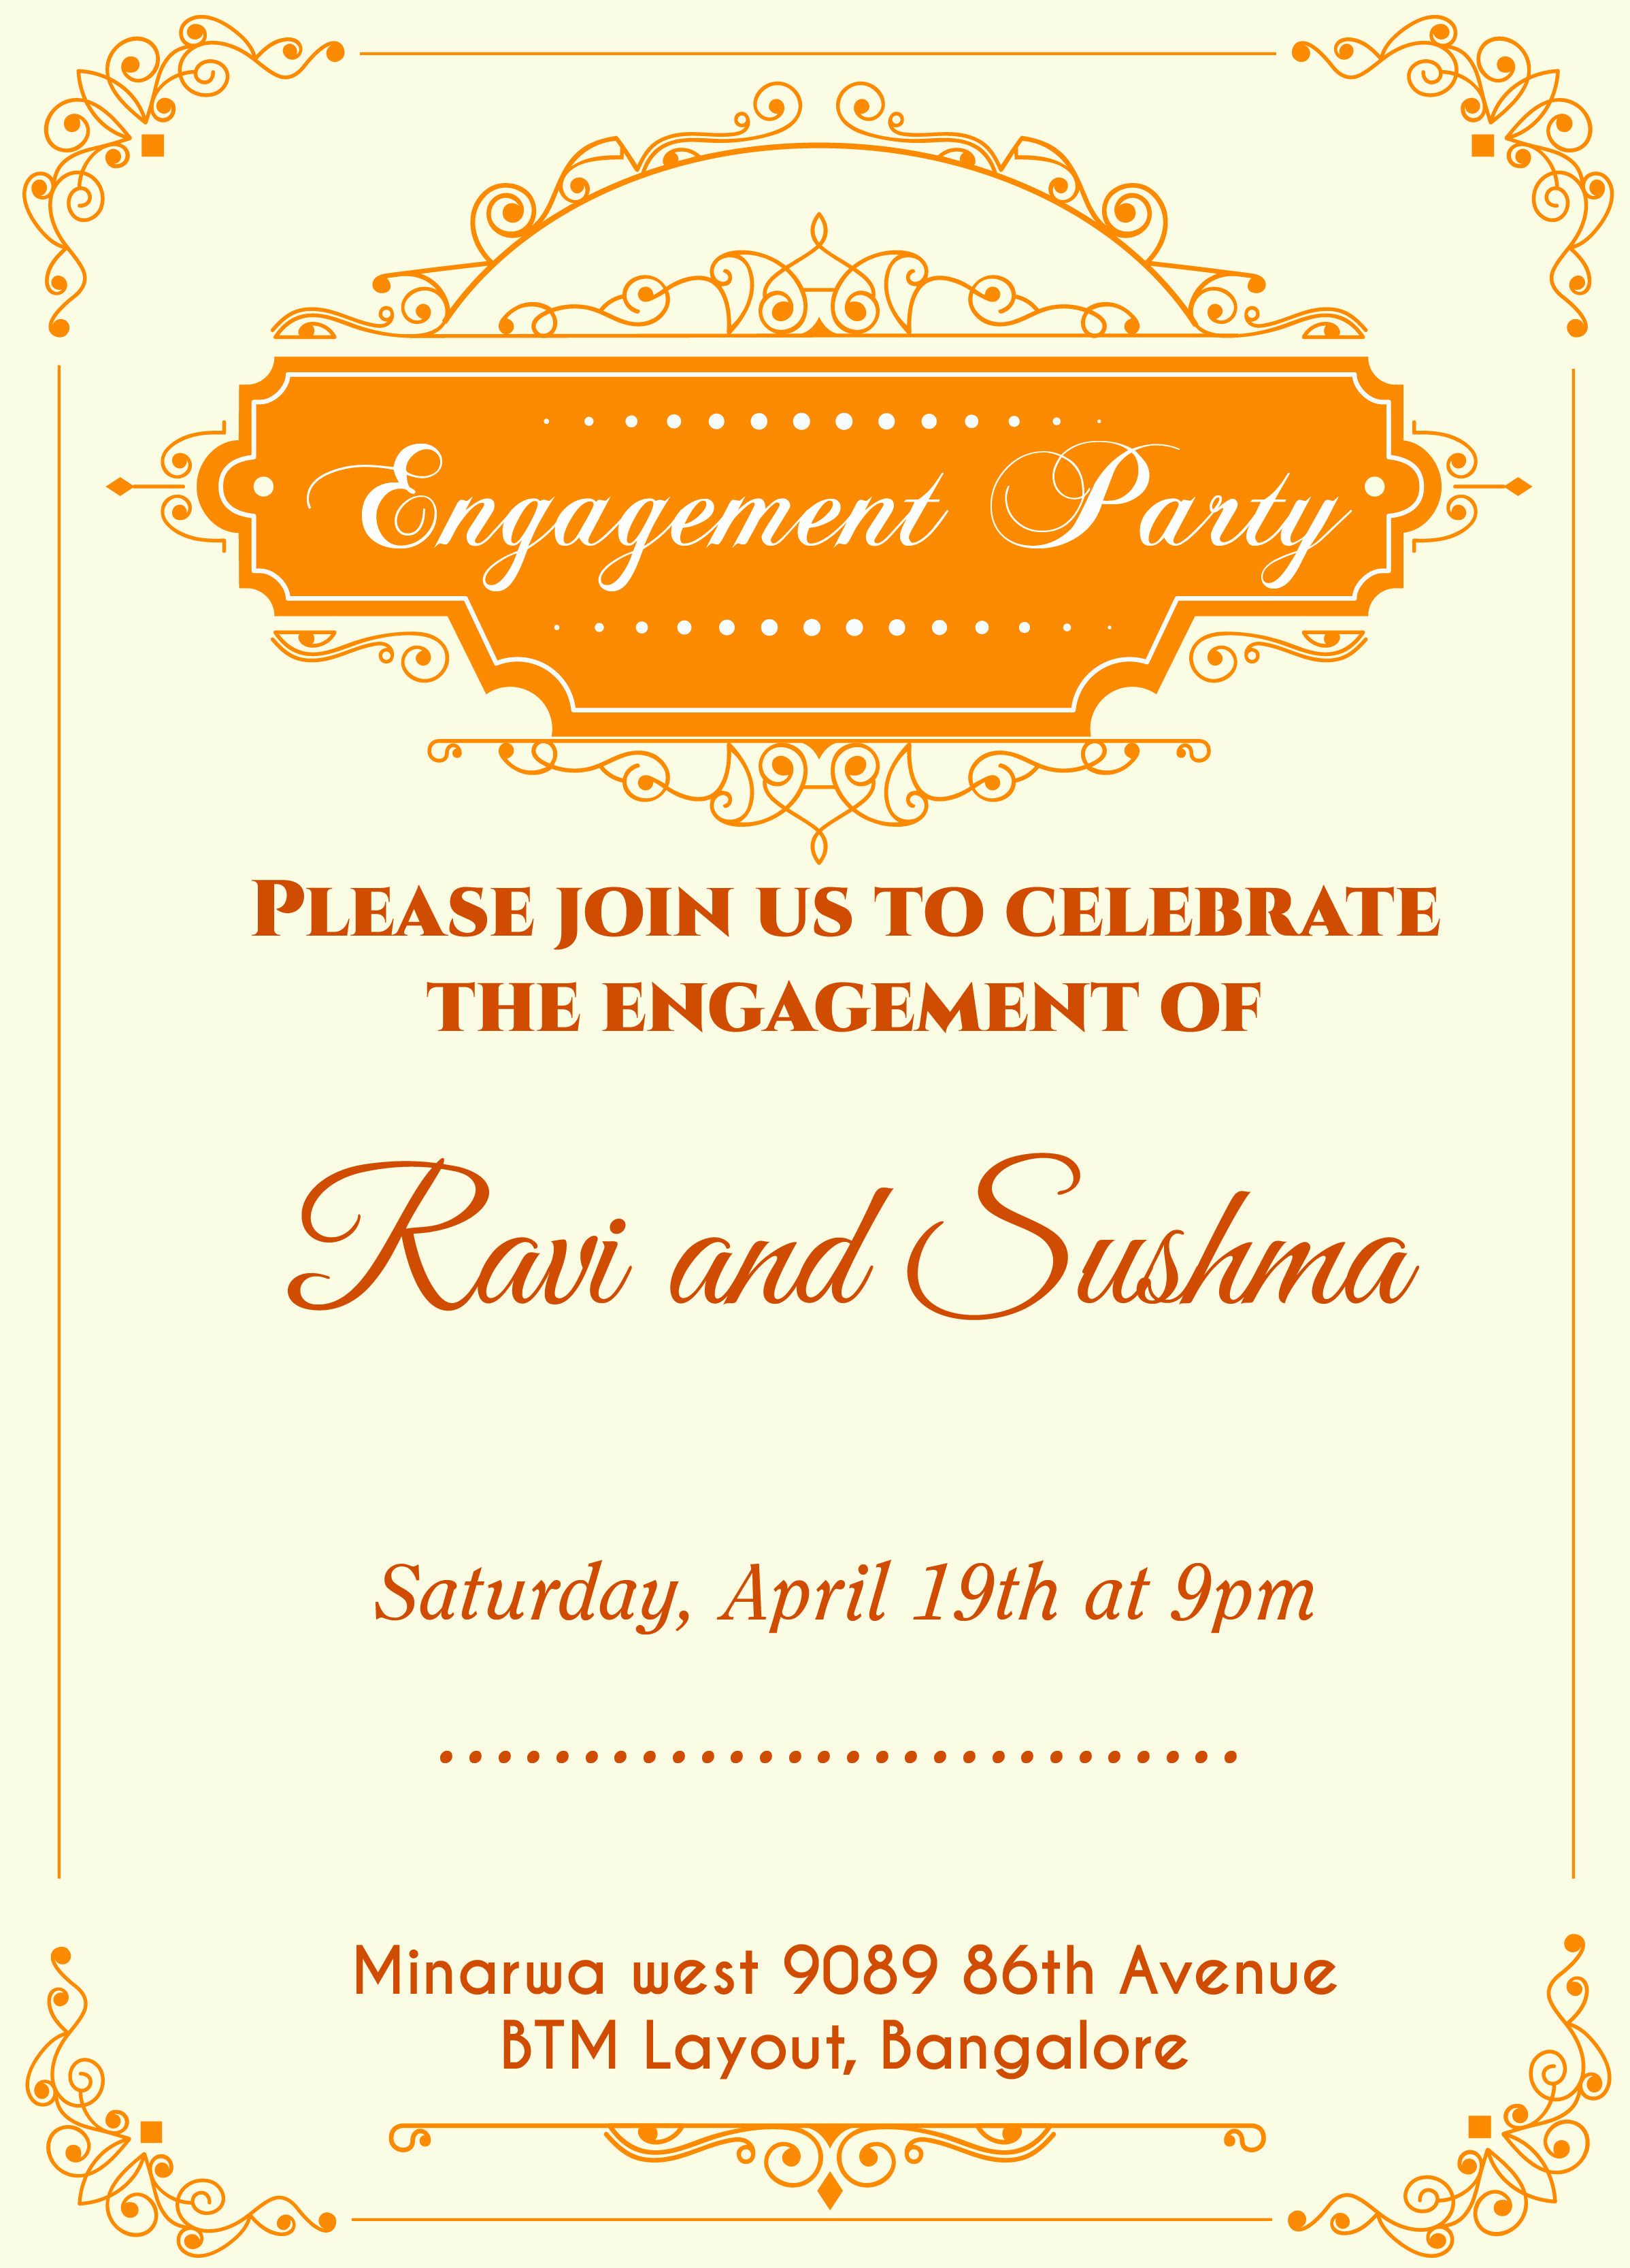 Engagment Party Invitation Wording Lovely Indian Engagement Invitation Engagement Invitation Template Engagement Invitation Cards Engagement Invitation Message